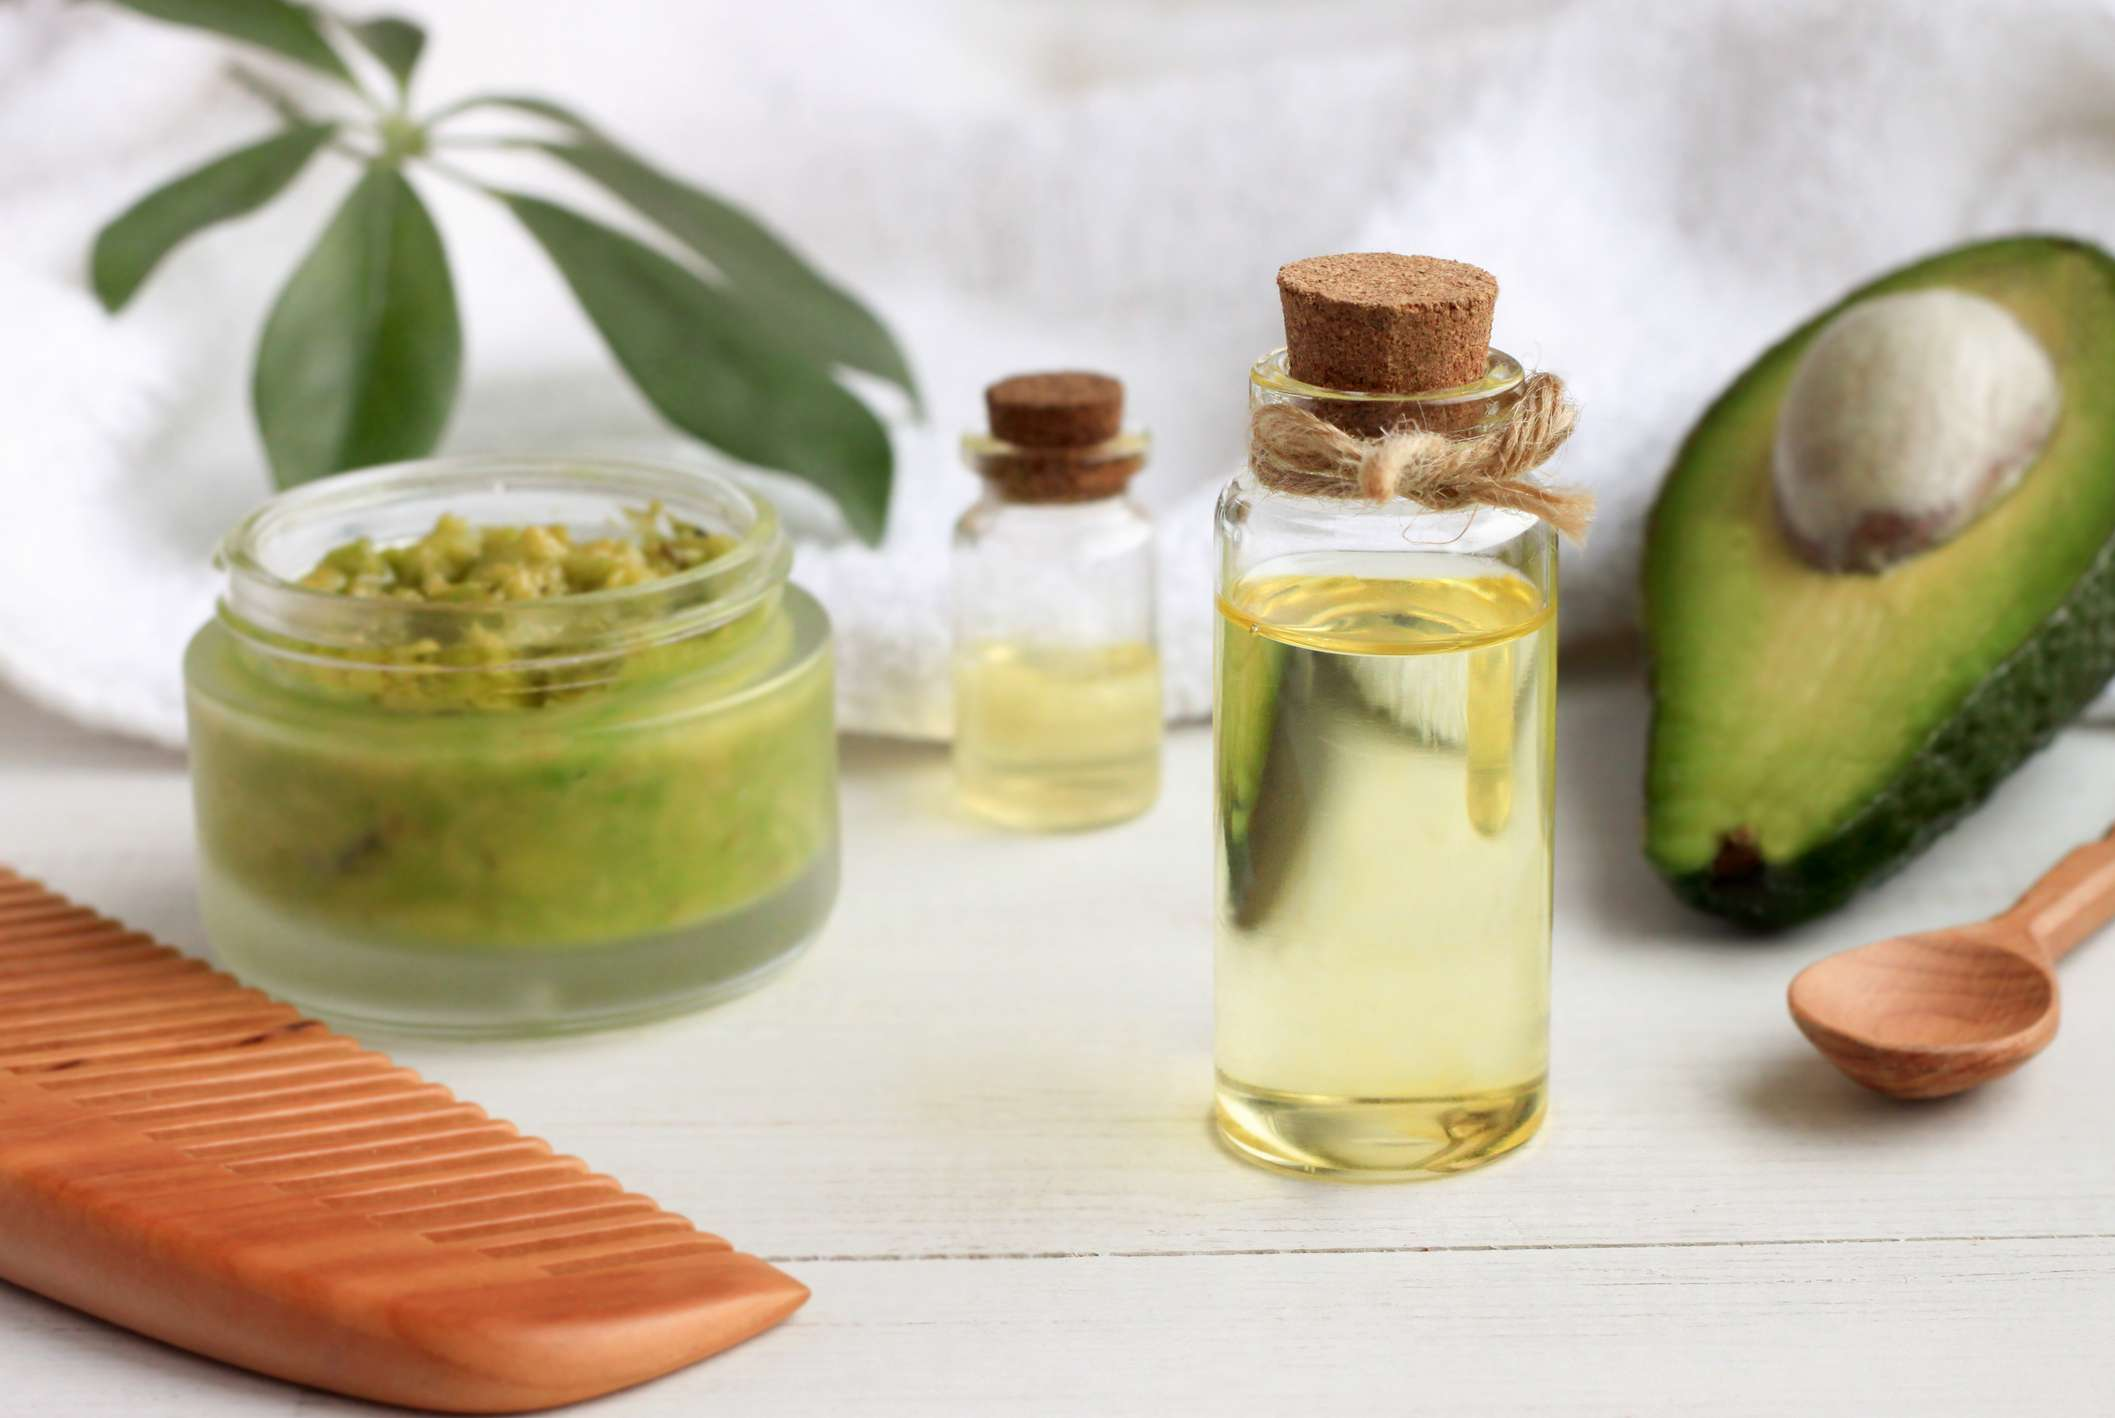 Avocado, jars of oil, and homemade face mask